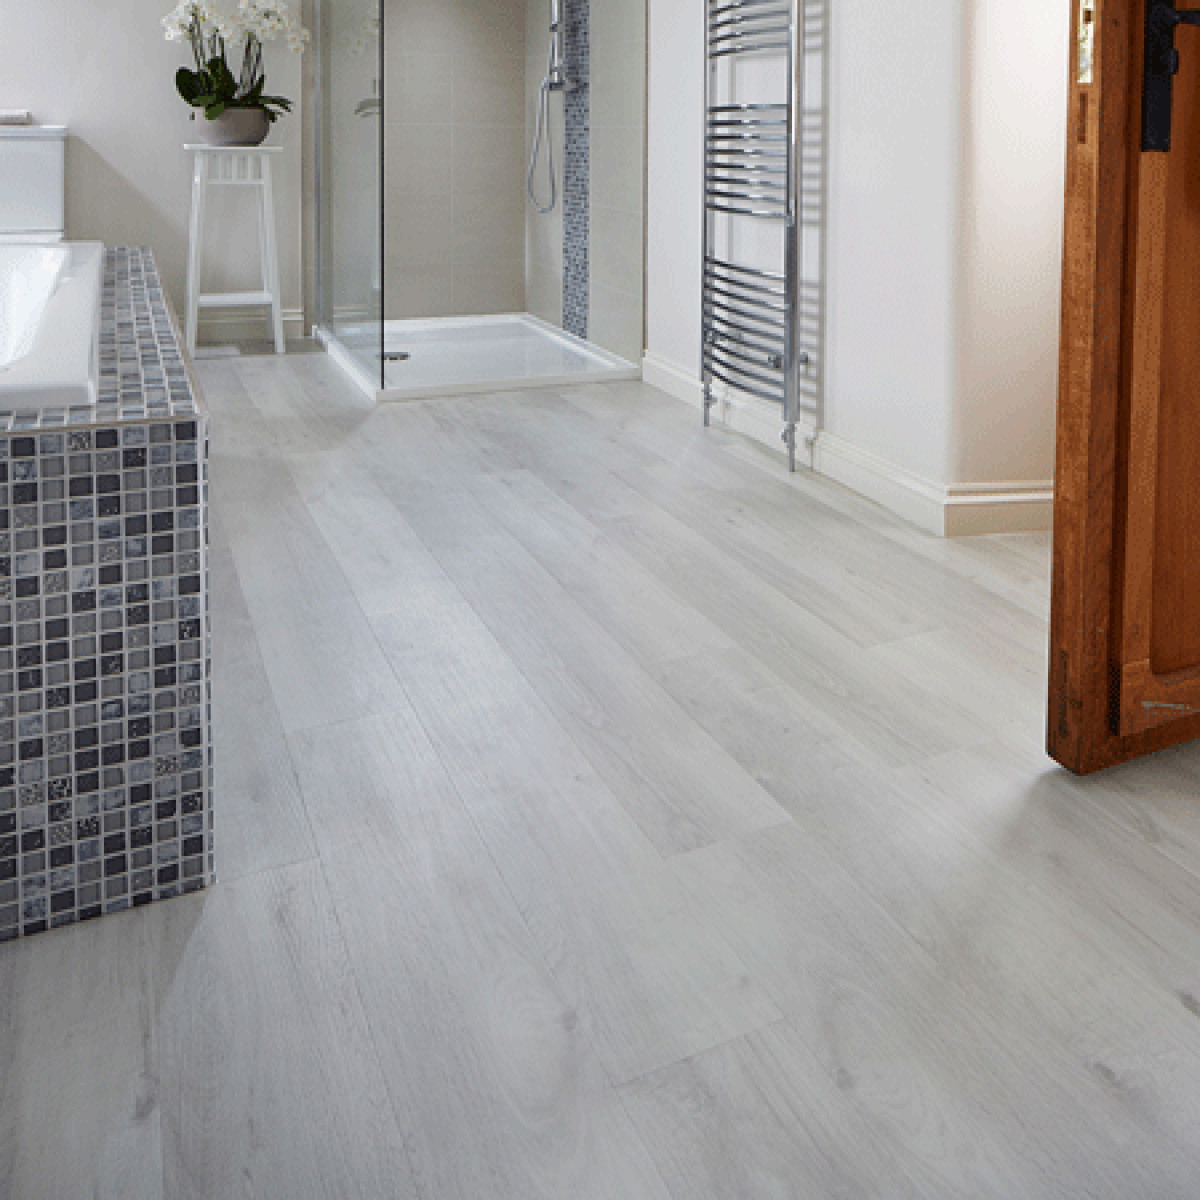 Vgw80t white washed oak karndean vinyl flooring the for 1 floor